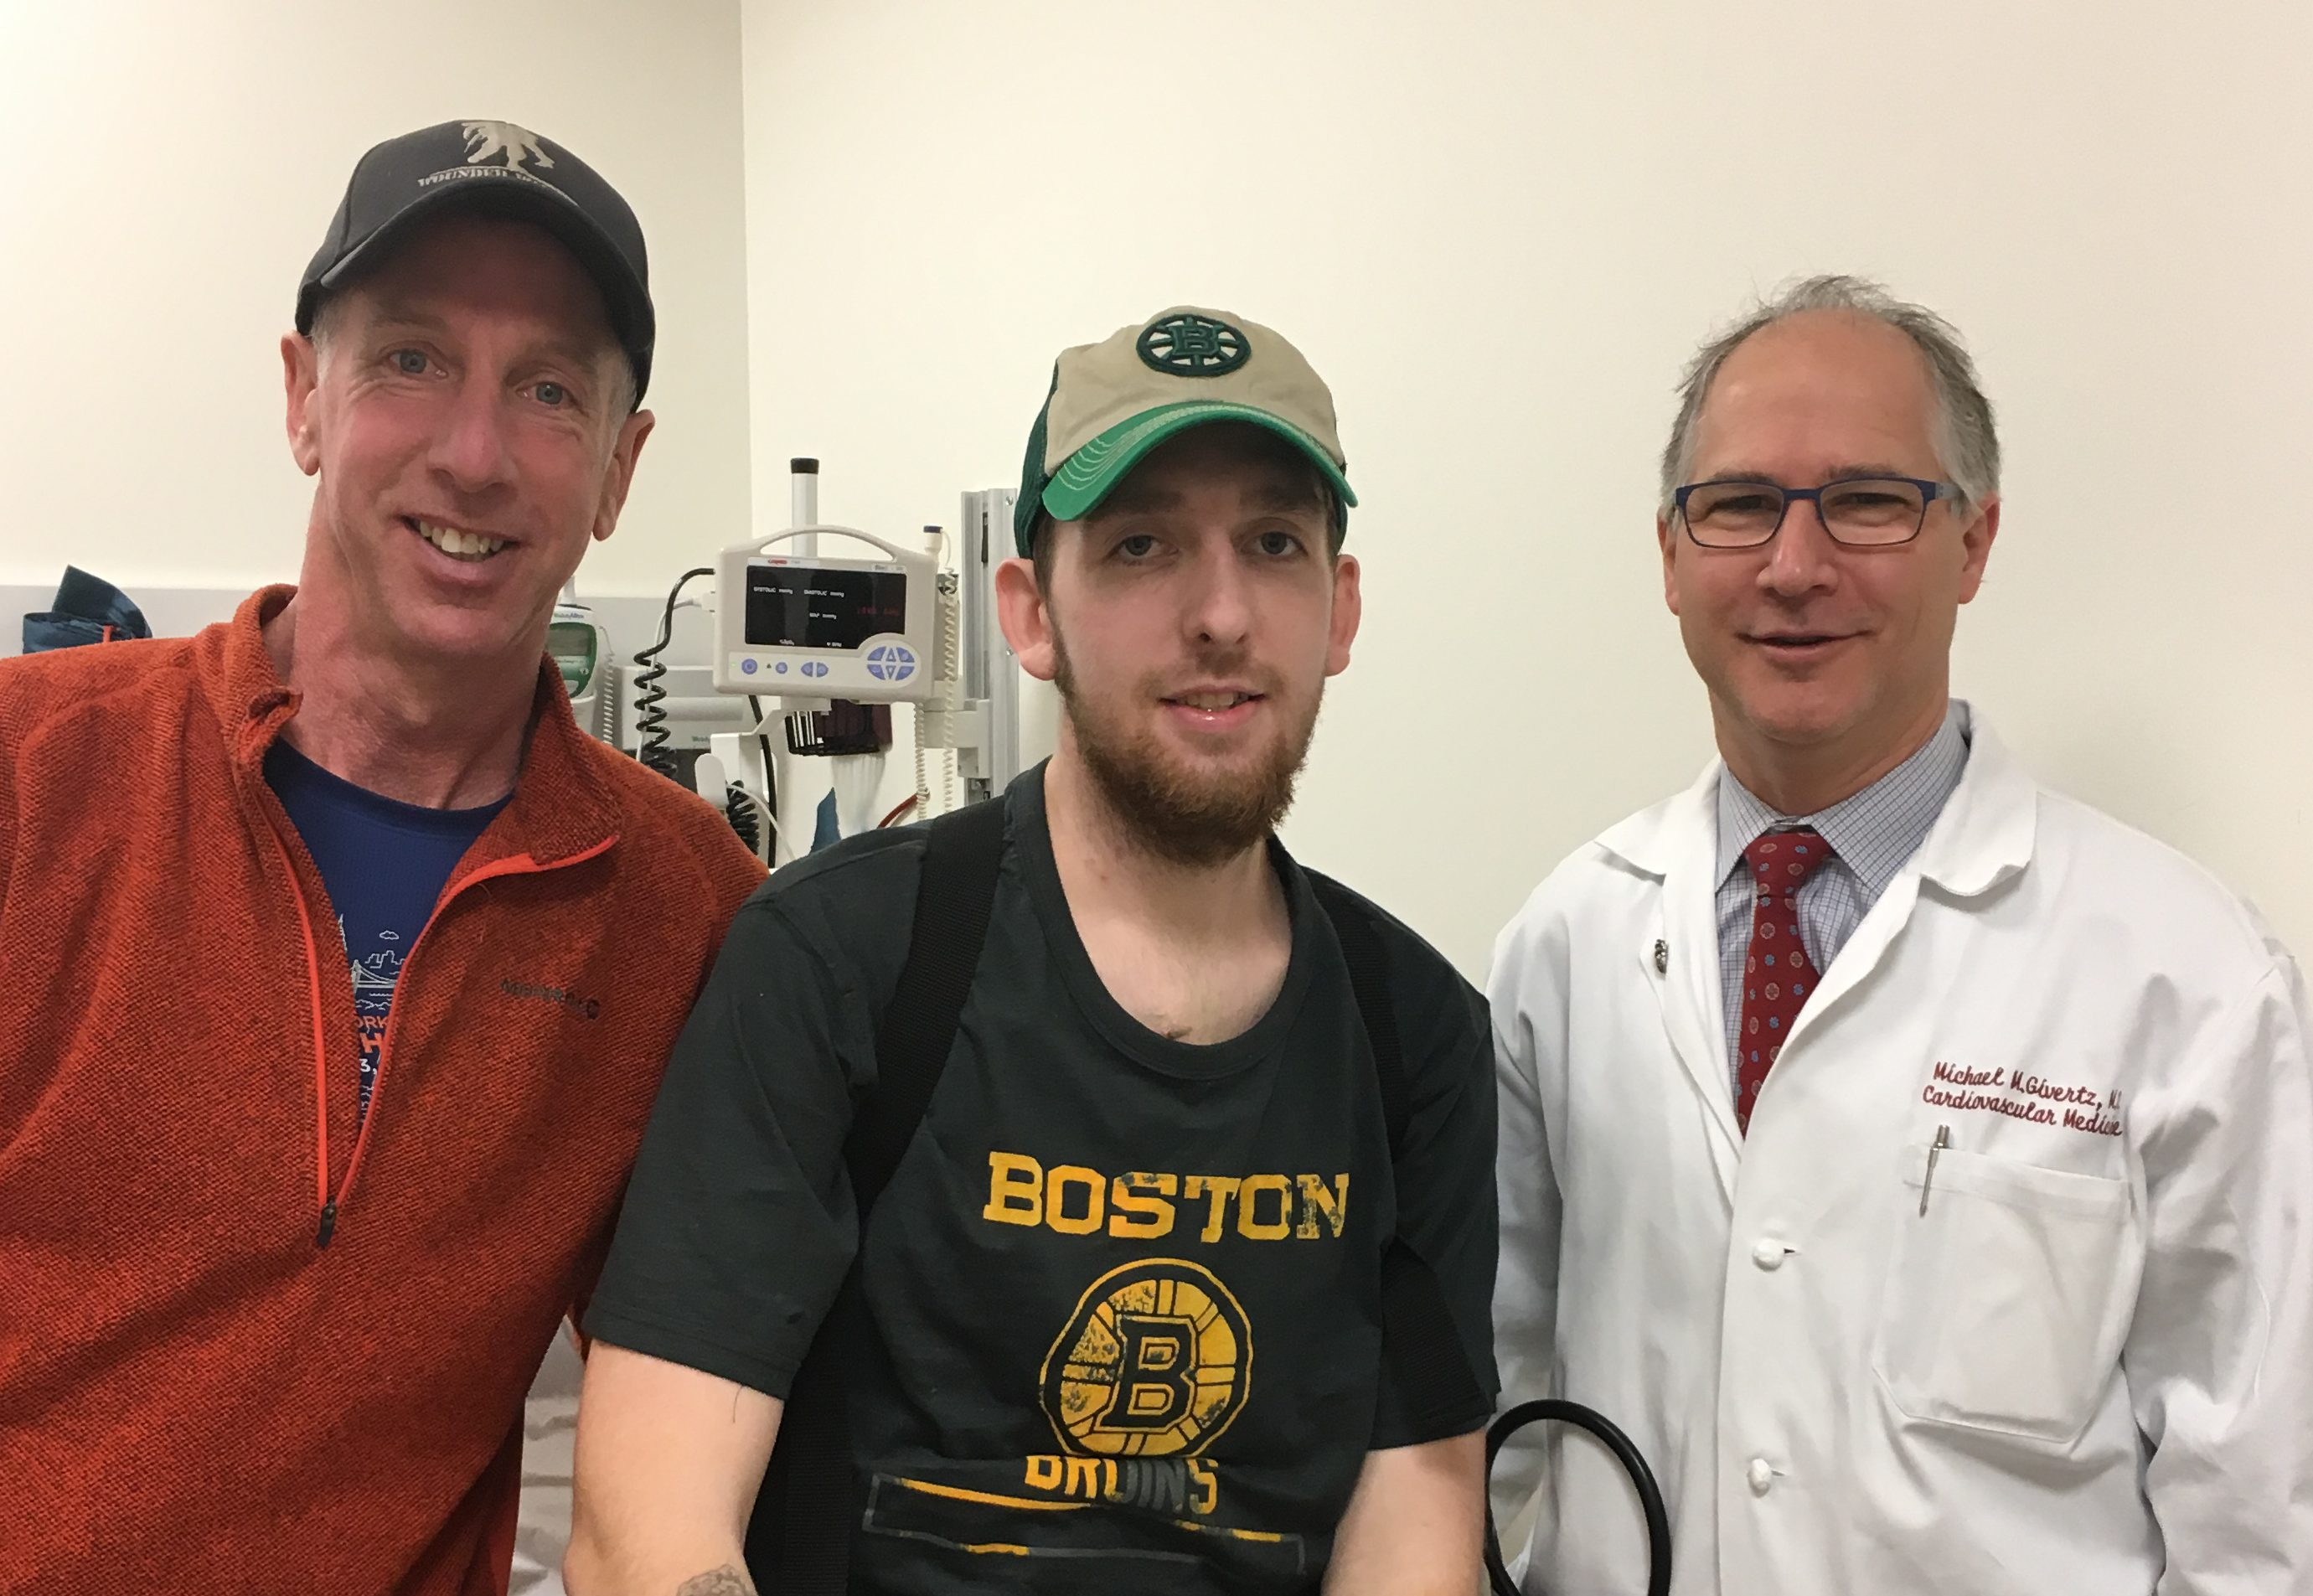 Conor Sullivan (center), with his father, Michael, and cardiologist Michael Givertz